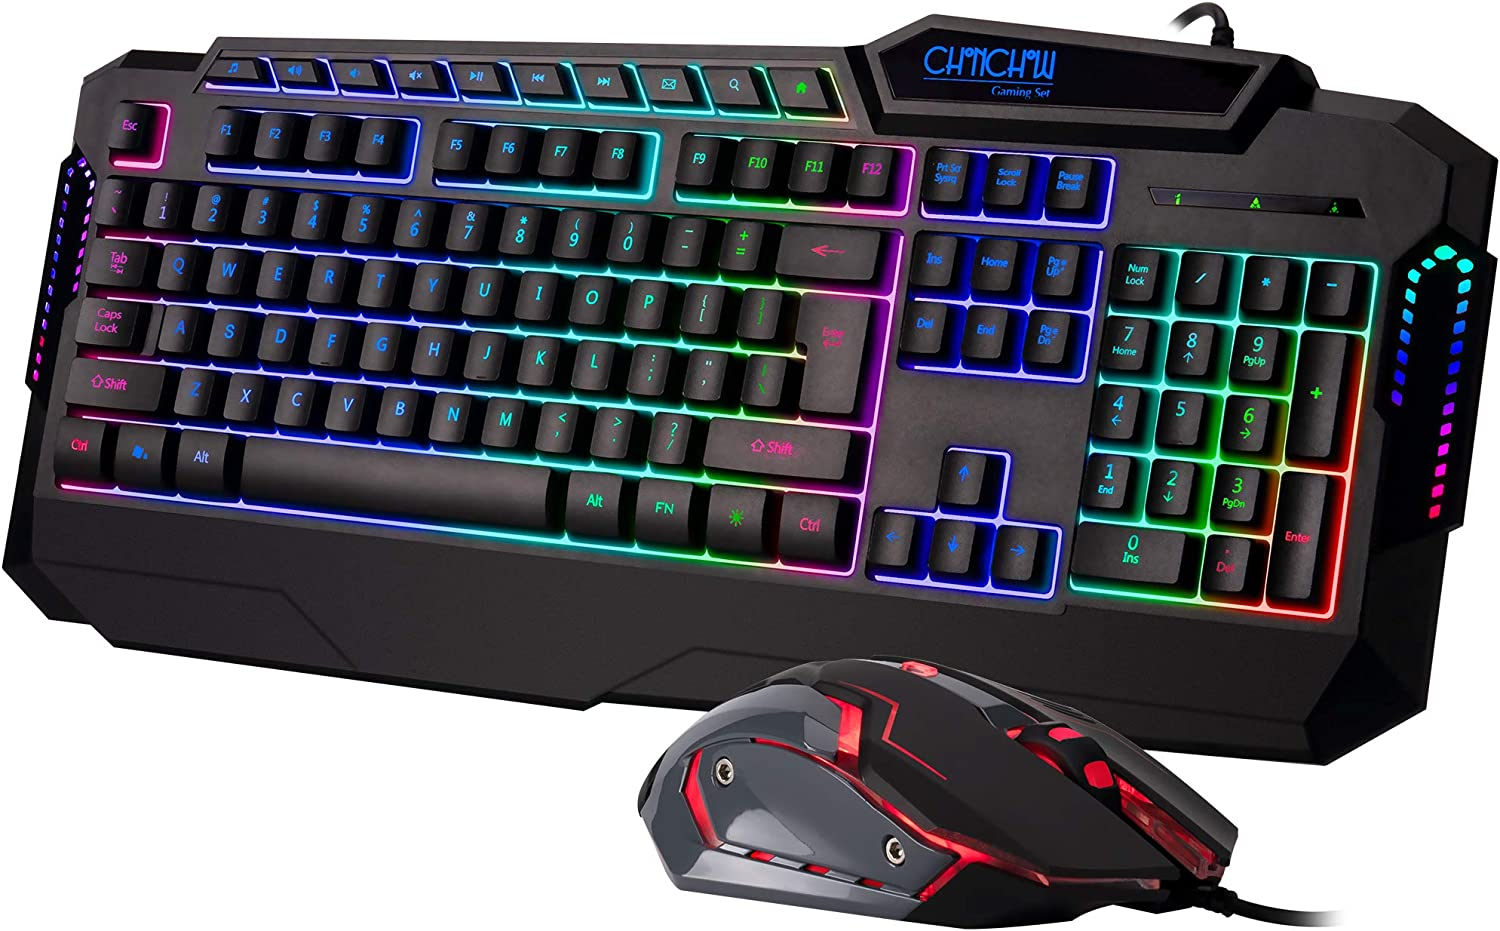 CHONCHOW Wired Gaming Keyboard and Mouse Combo, LED Rainbow Backlit Ergonomic Wrist Rest Gaming Keyboard and 3200 DPI Gaming Mouse Combo for Windows PC PS4 Xbox(Dy61, Black)